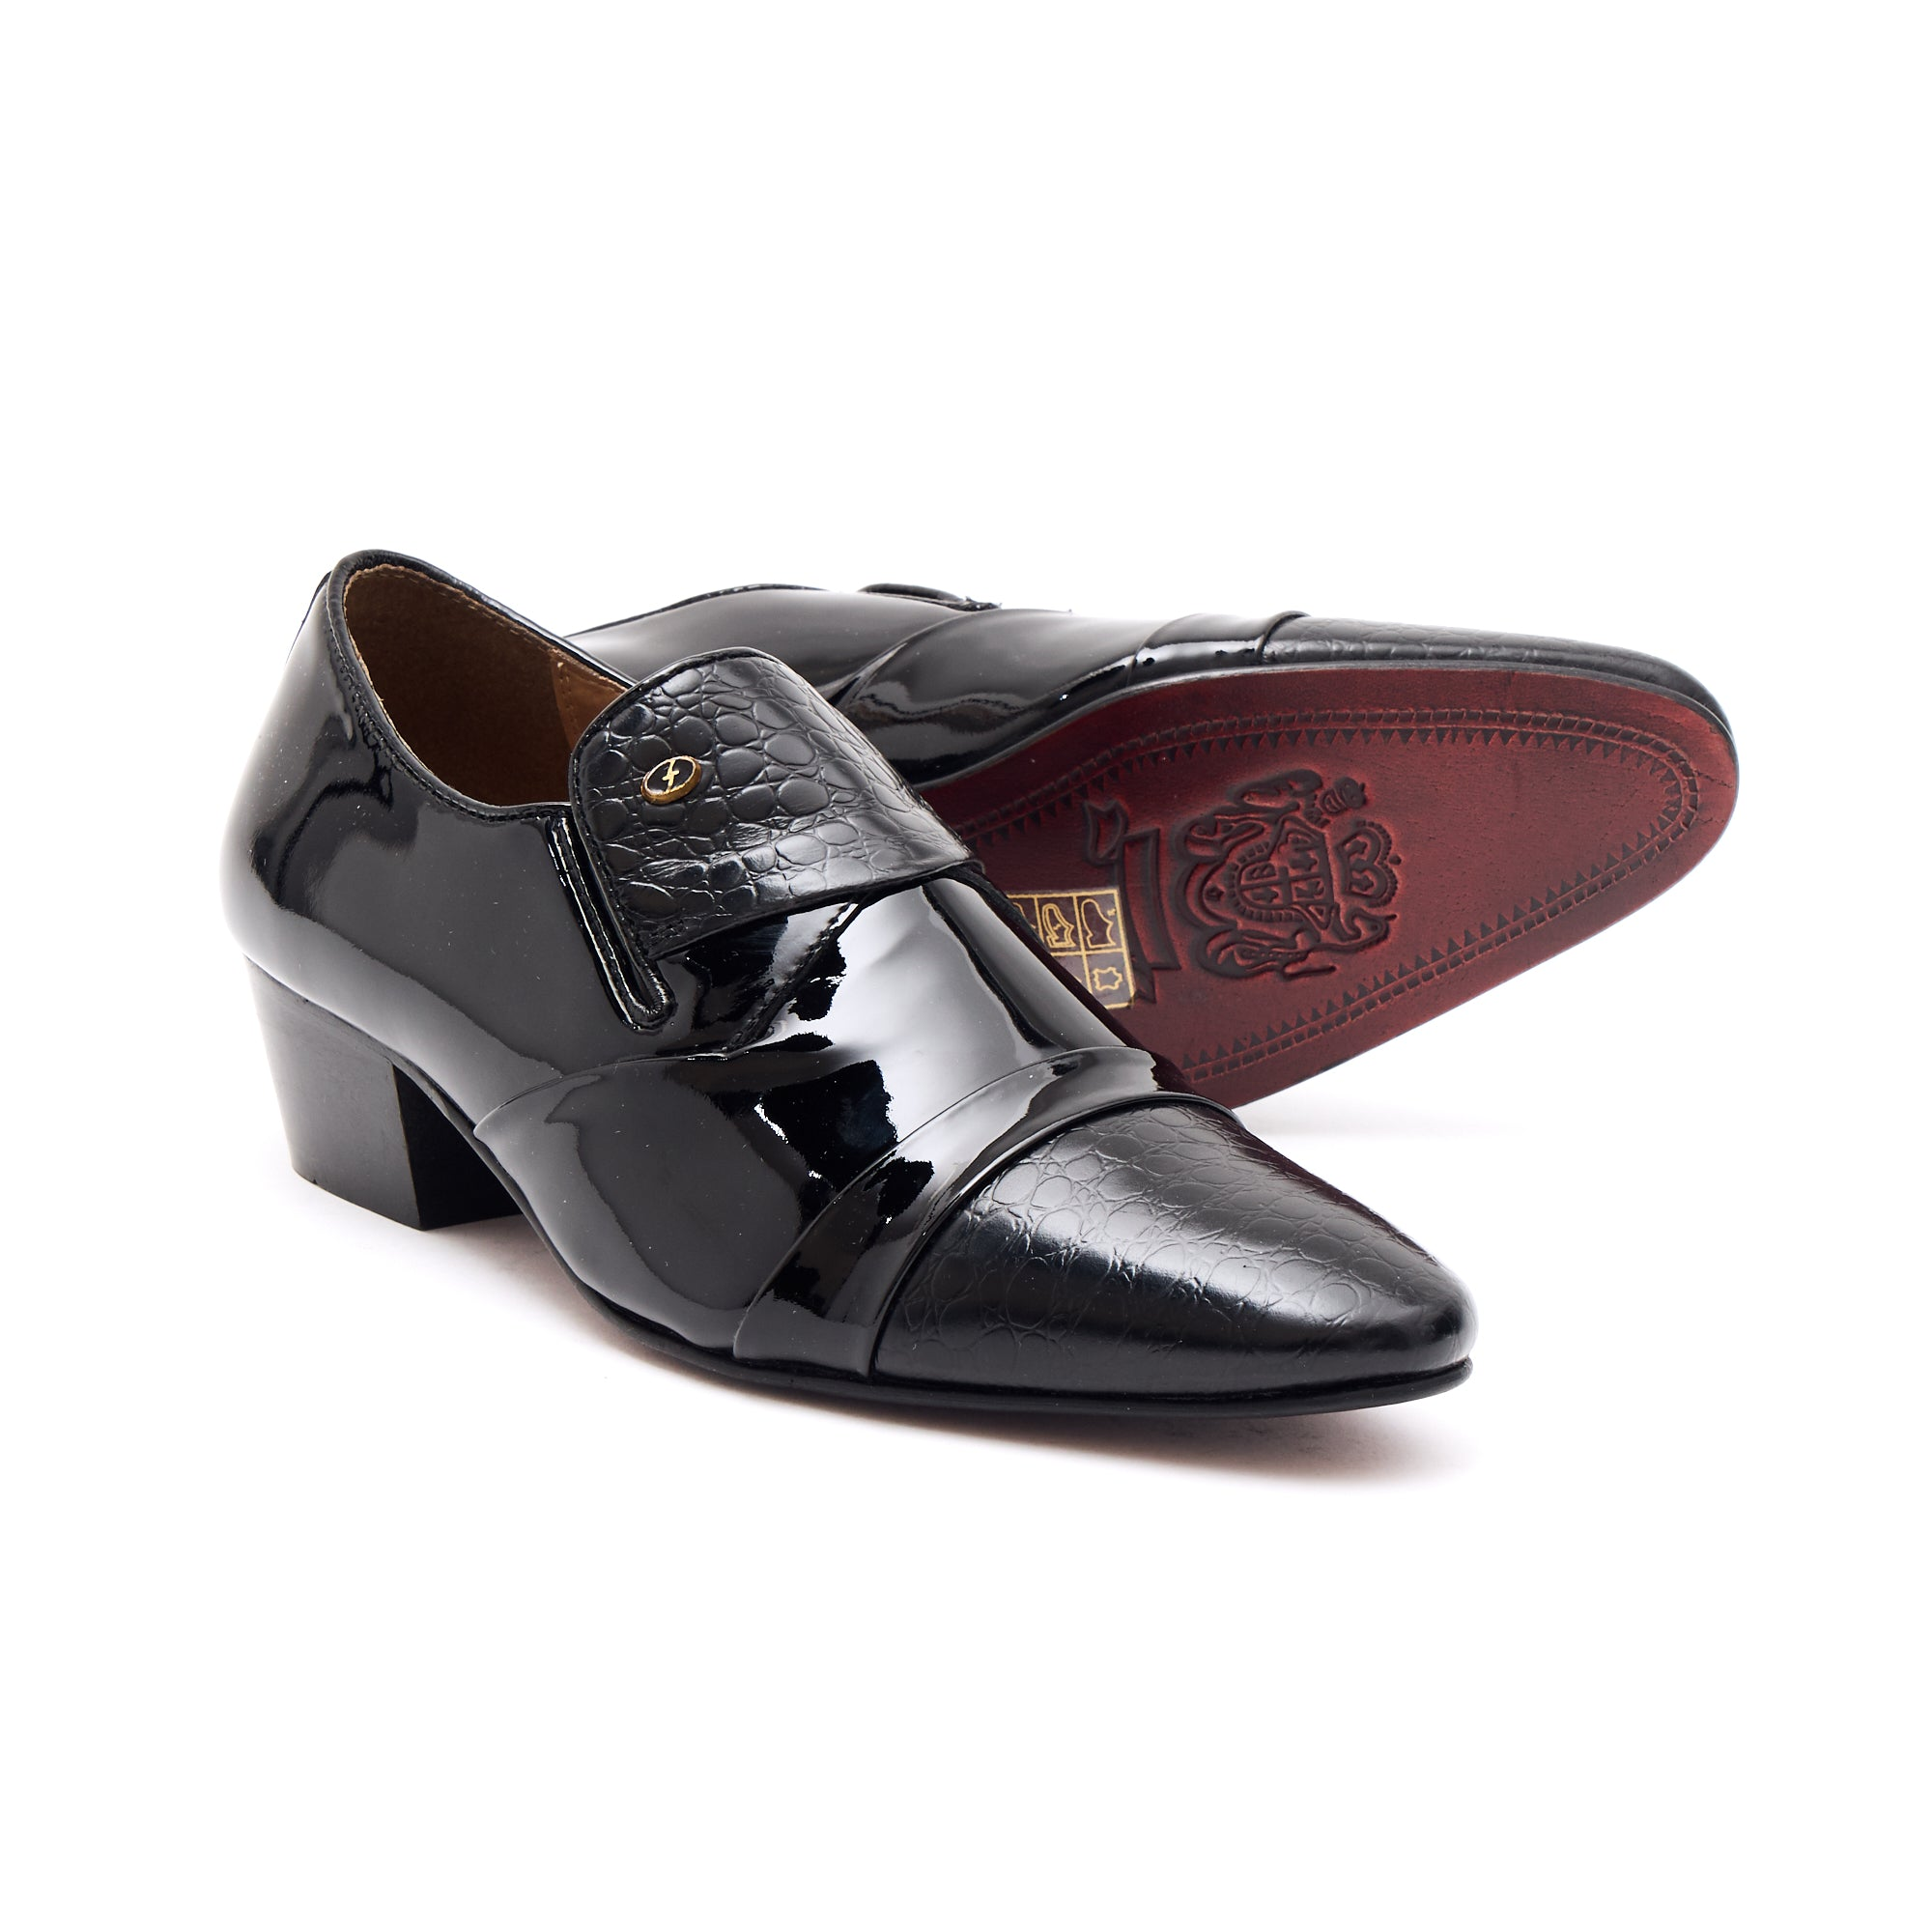 Mens Leather Cuban Heel Patent Shoes - 34005 Black